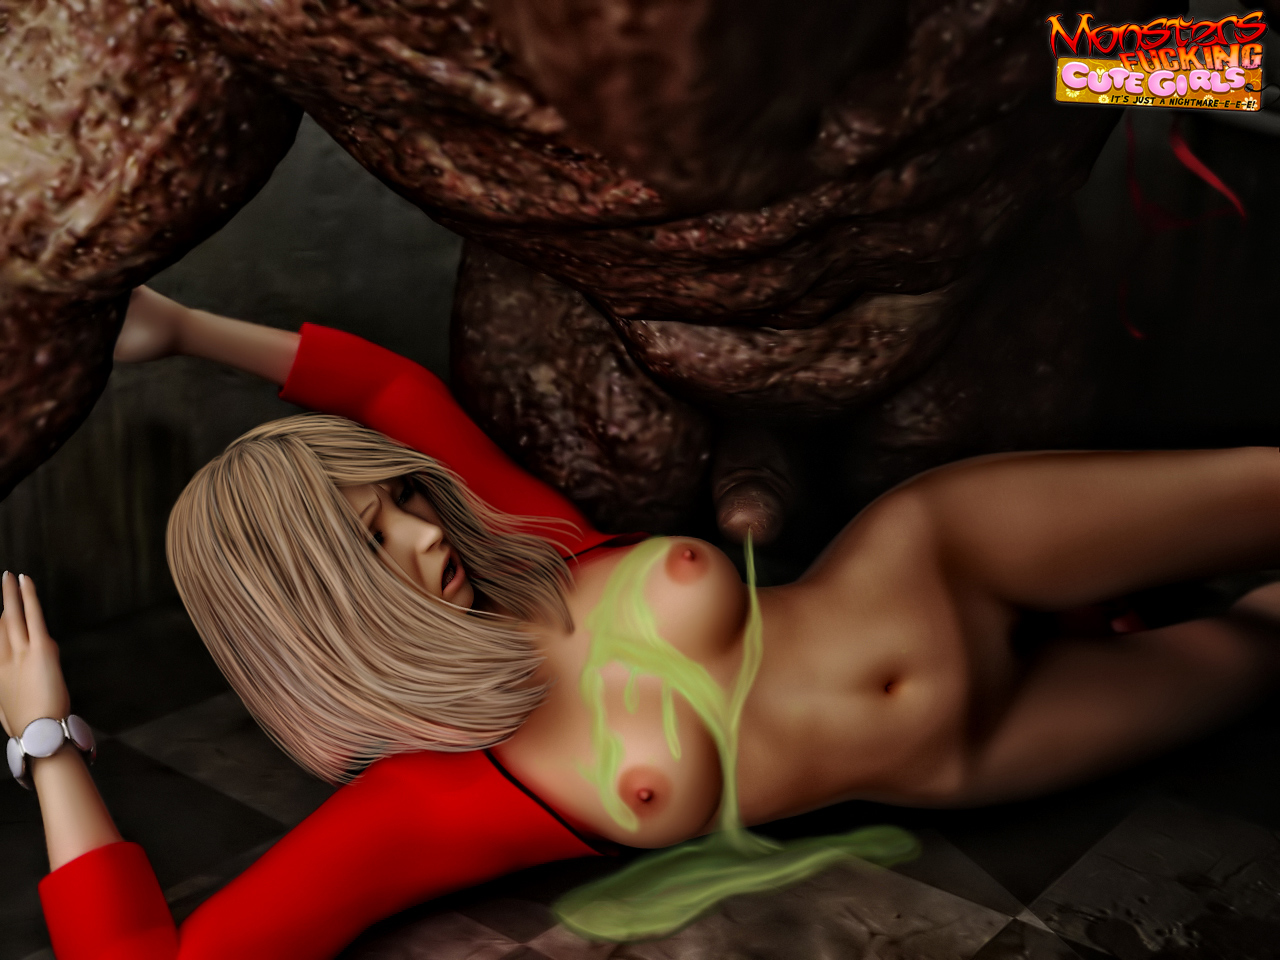 Sexs monster pic 3d erotic scenes